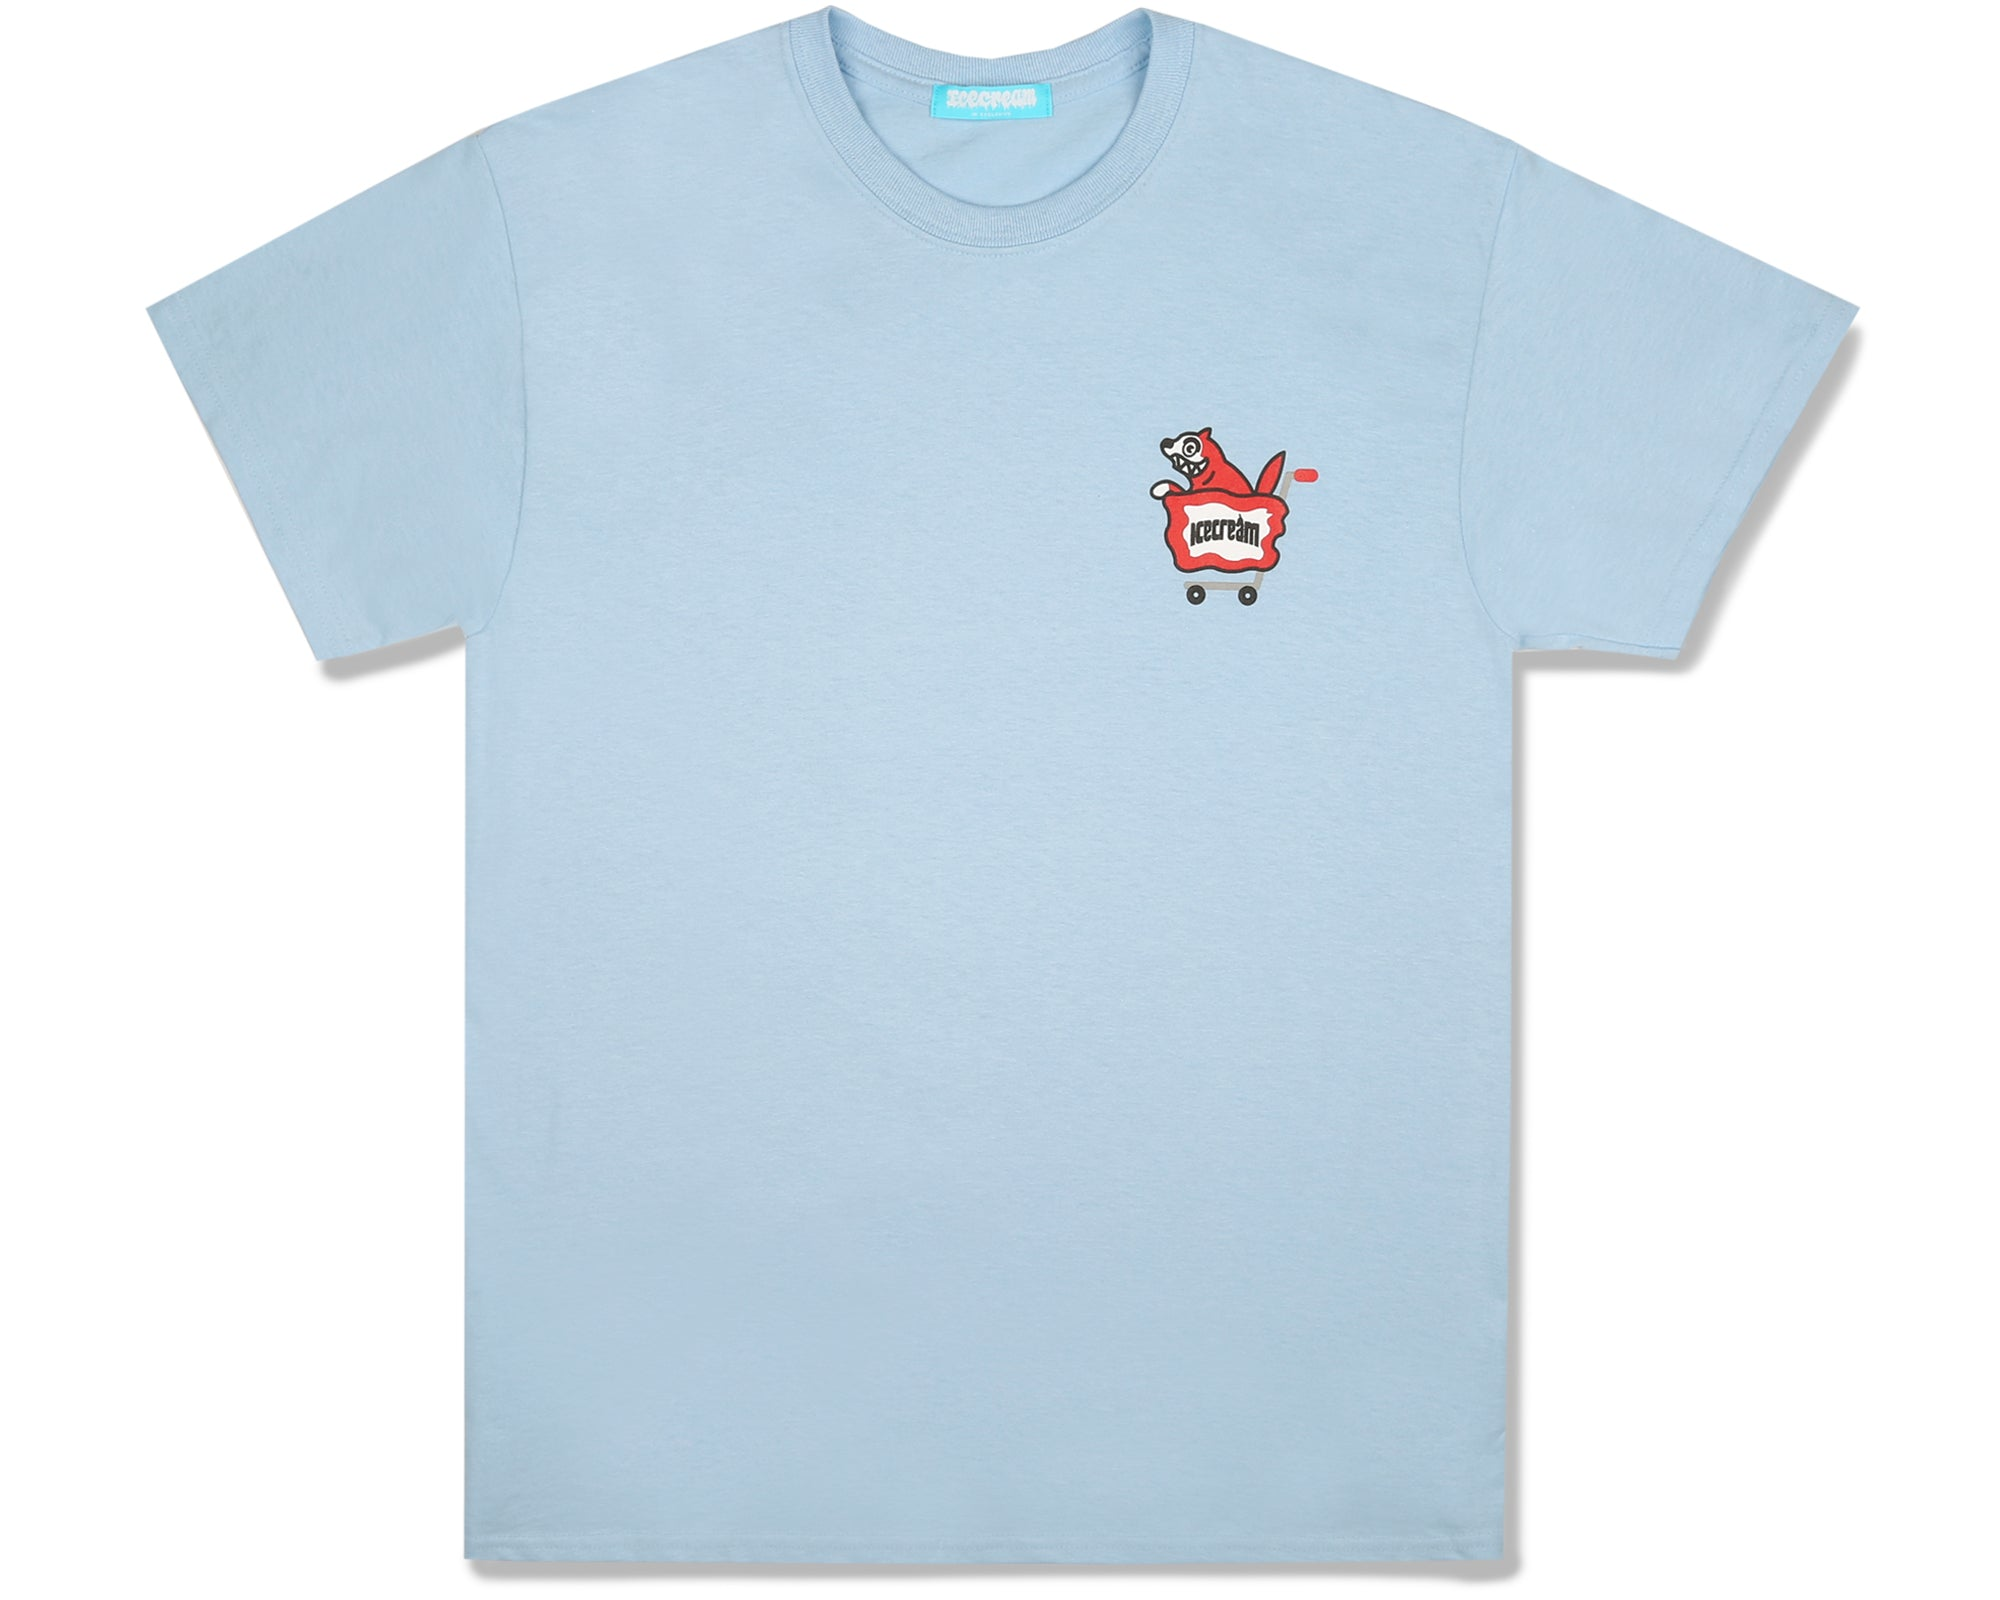 RUNNING DOG T-SHIRT - LIGHT BLUE